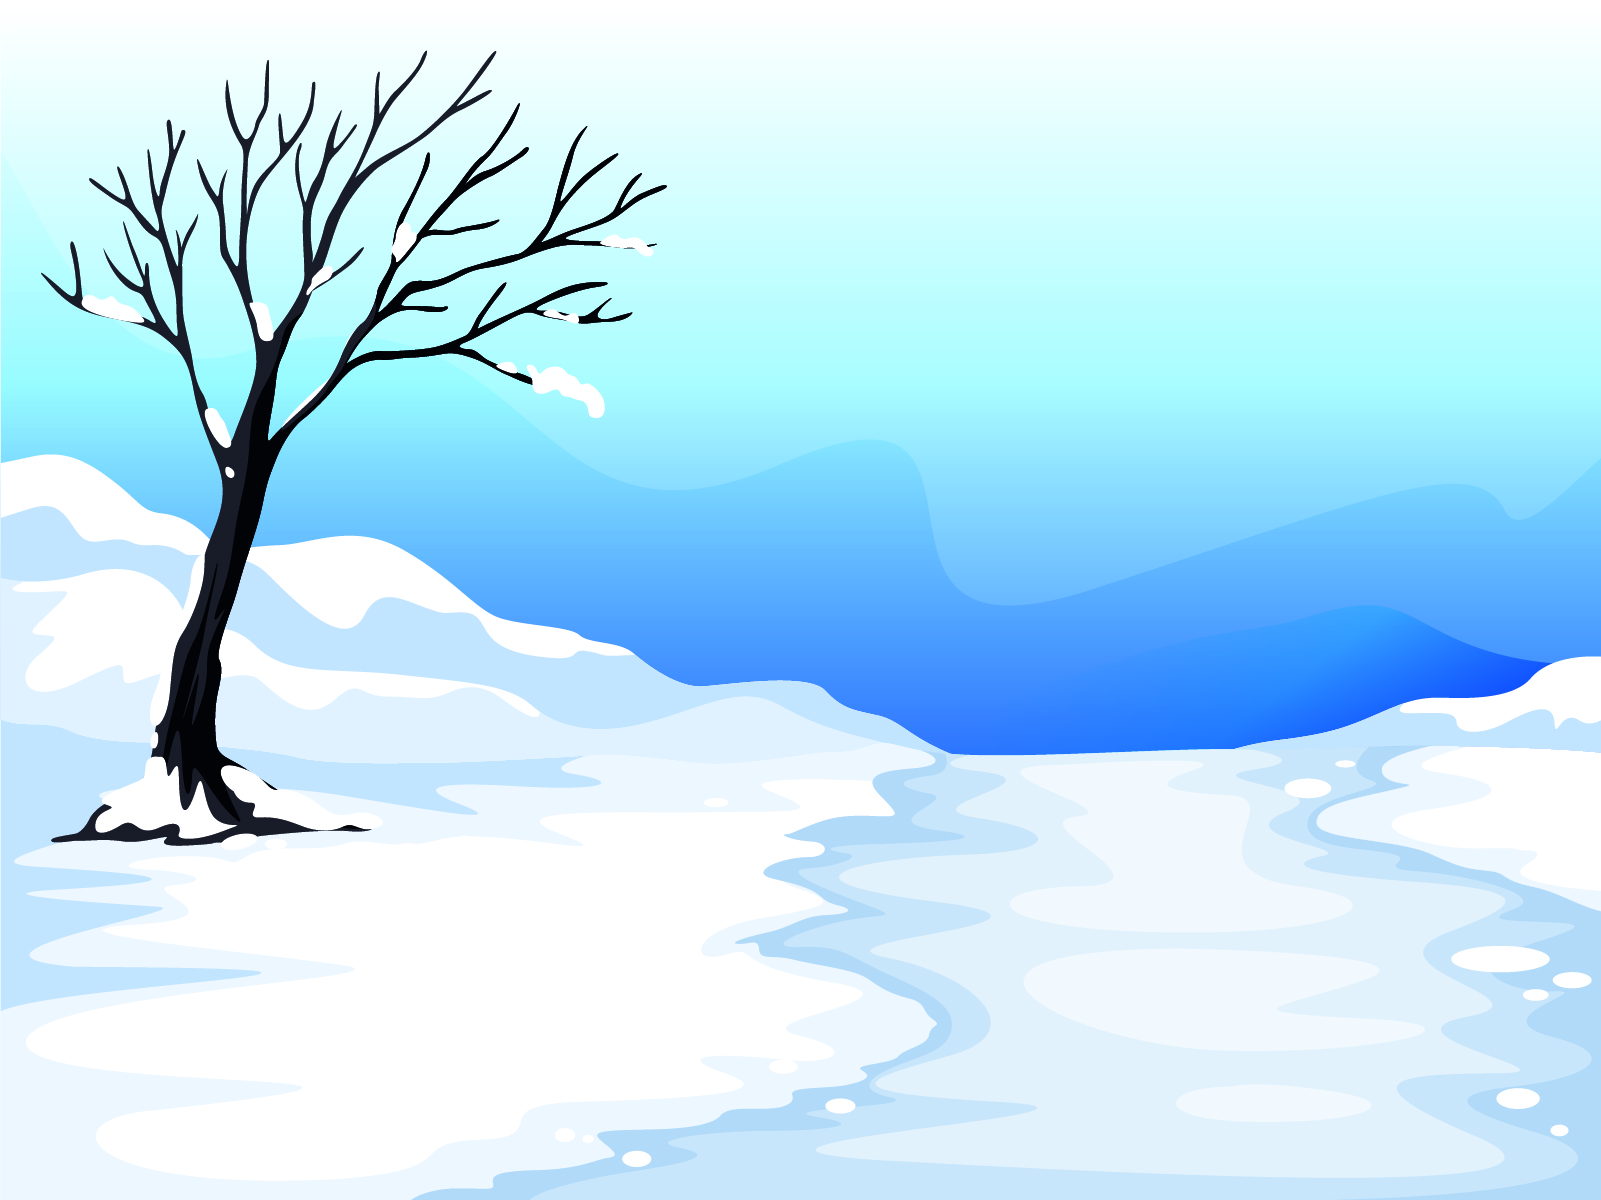 Snow And Tree Illustration Ppt Backgrounds 3d Blue Design